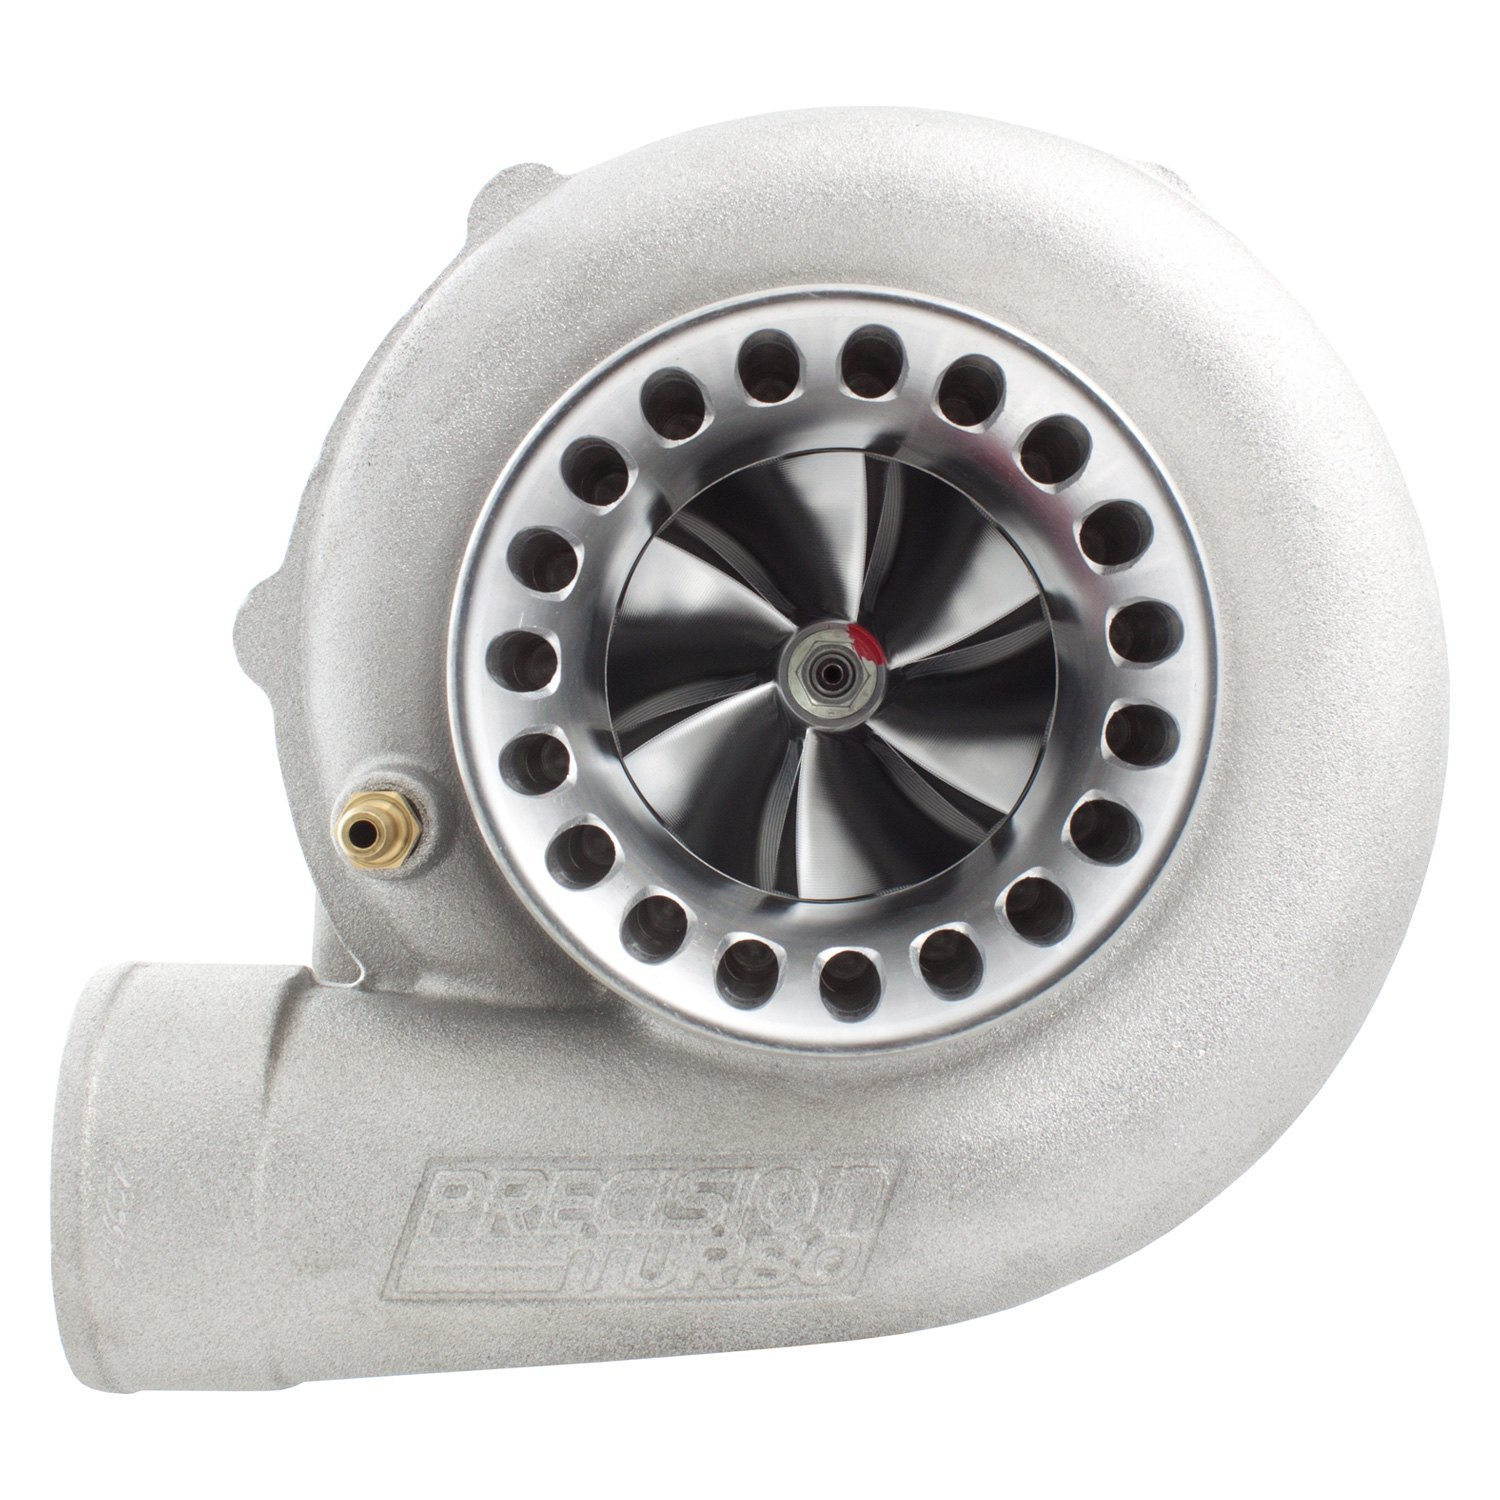 Precision Turbo Fittings: CEA™ Street And Race Turbocharger